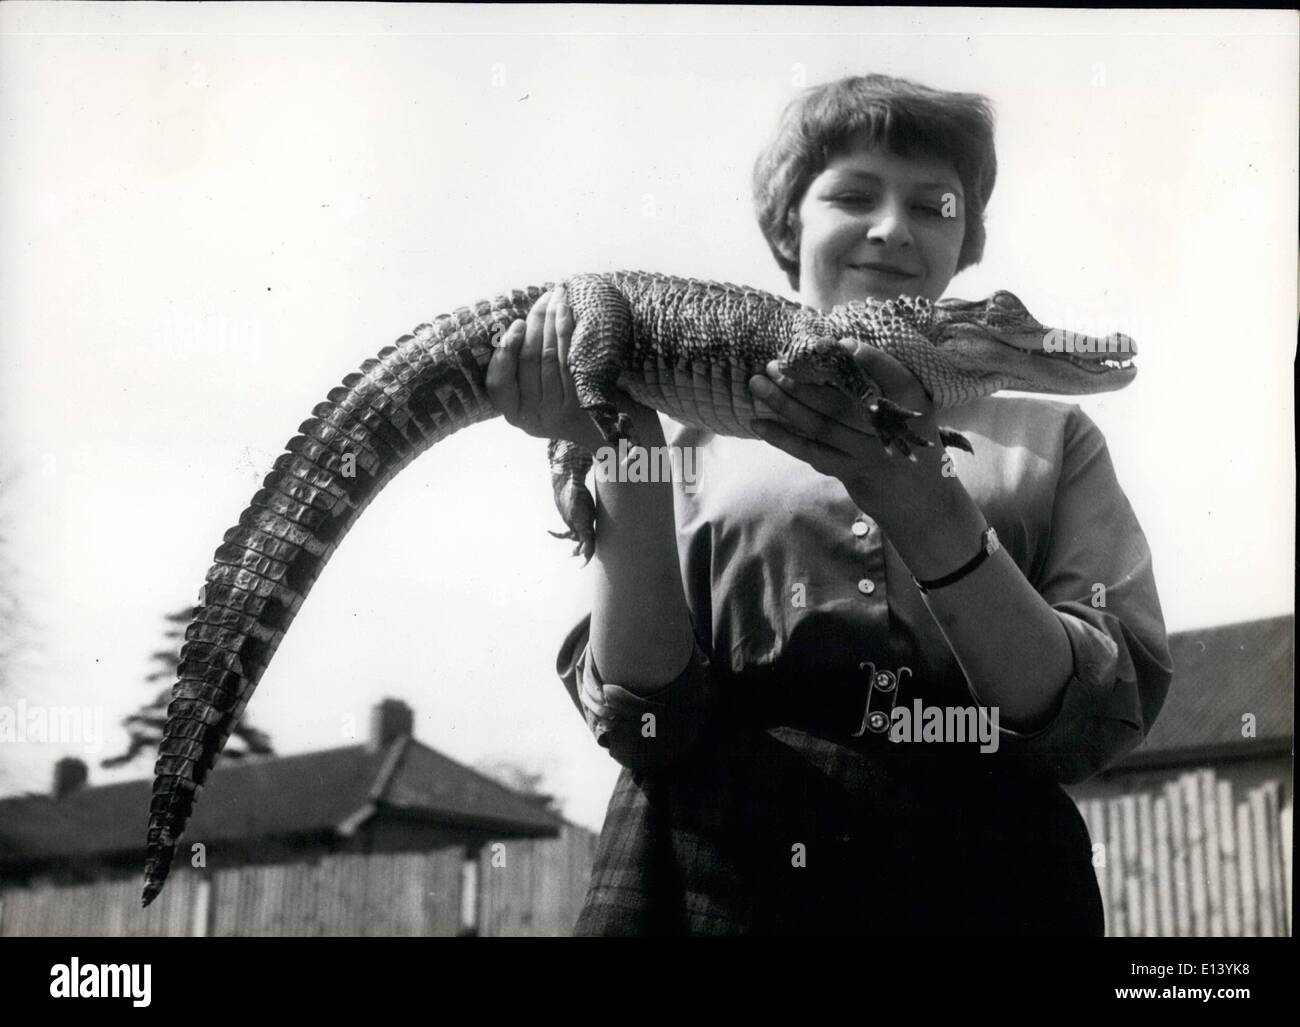 Mar. 27, 2012 - Meet Mr. Murgatroyd : Anne Kindler is finding her pet alligator, Murgatroyd gets heavier eachg week. Already he's three feet - and -a - bit leng. But he's oh. so tame and friendly, and just loves a tickle on his tummy. - Stock Image